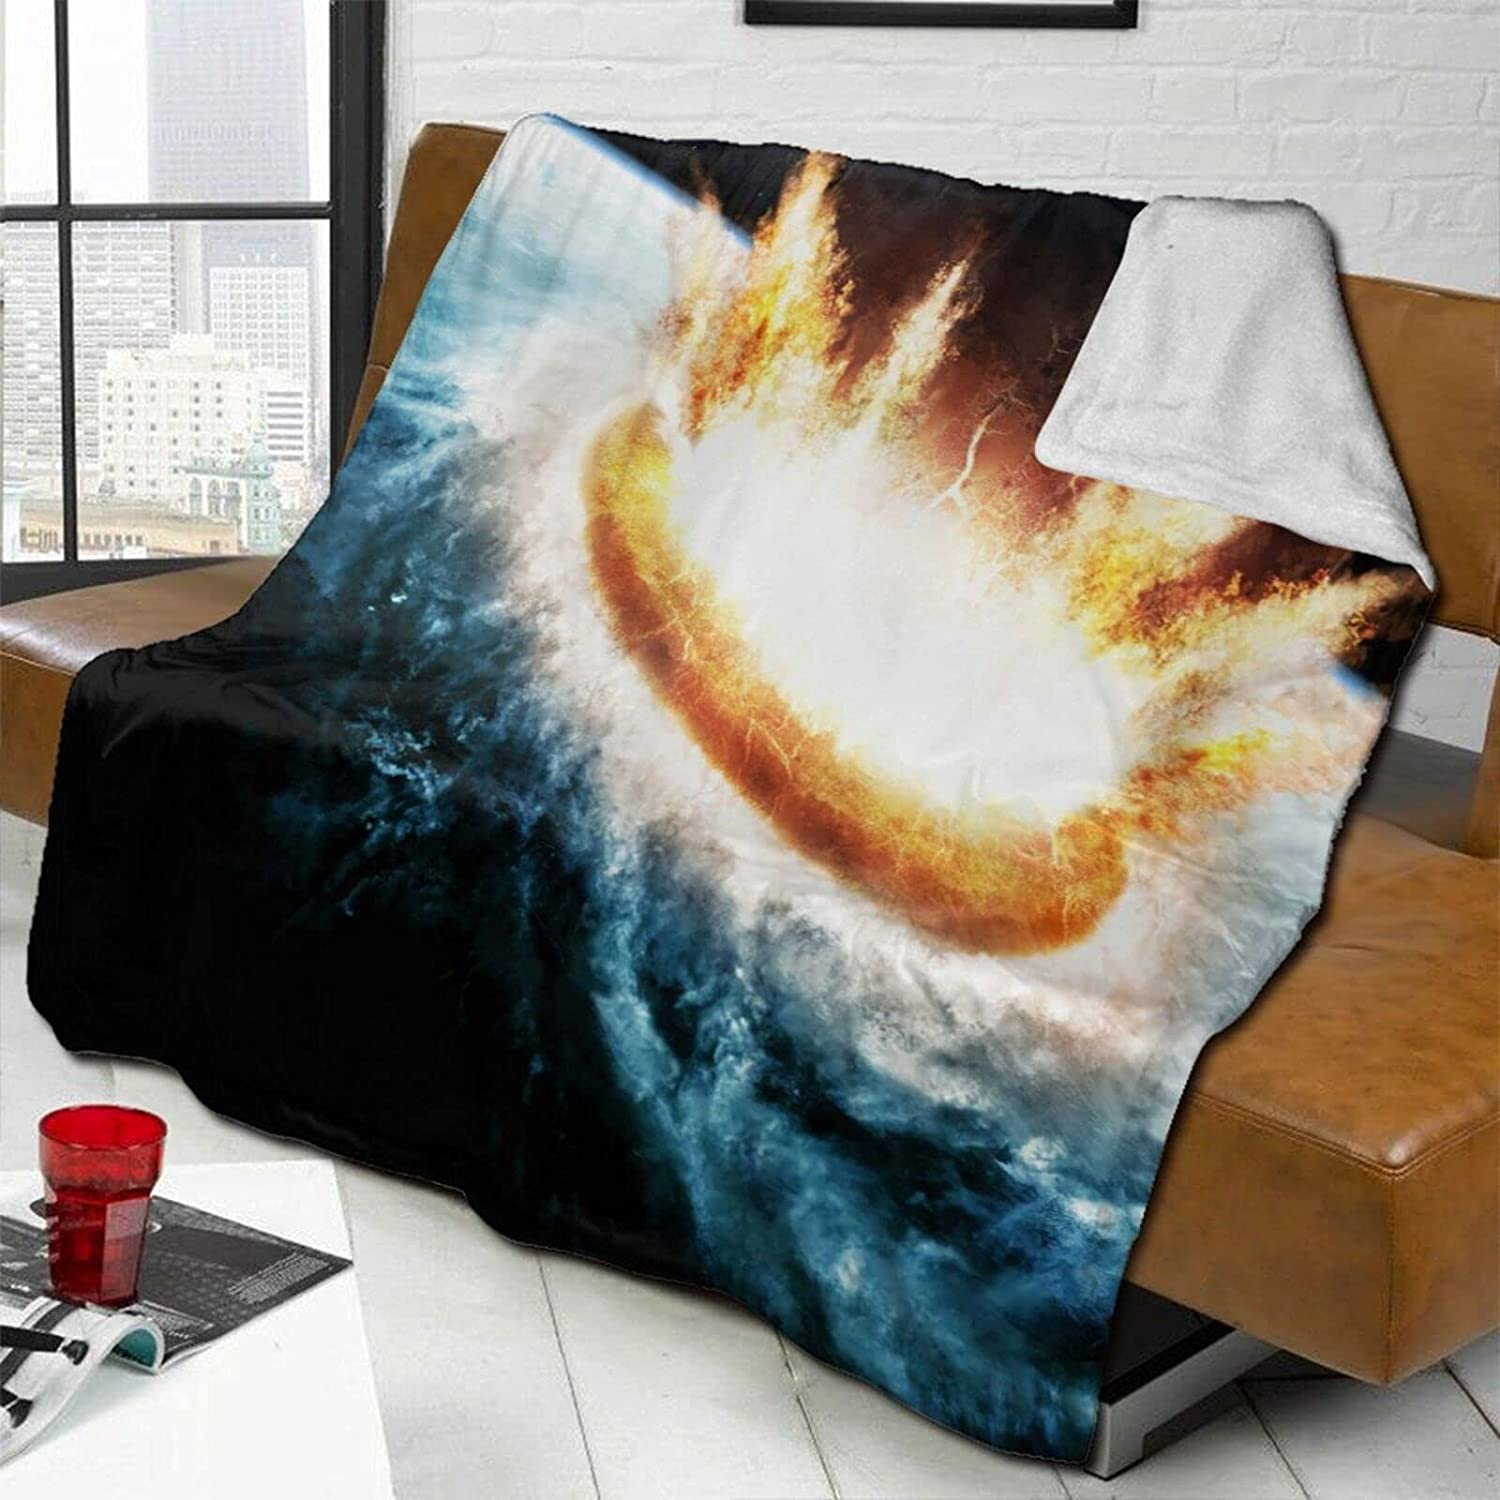 Ranking TOP2 Space Challenge the lowest price of Japan ☆ Collection Blanket Lightweight Super Bed Luxury Cozy Soft